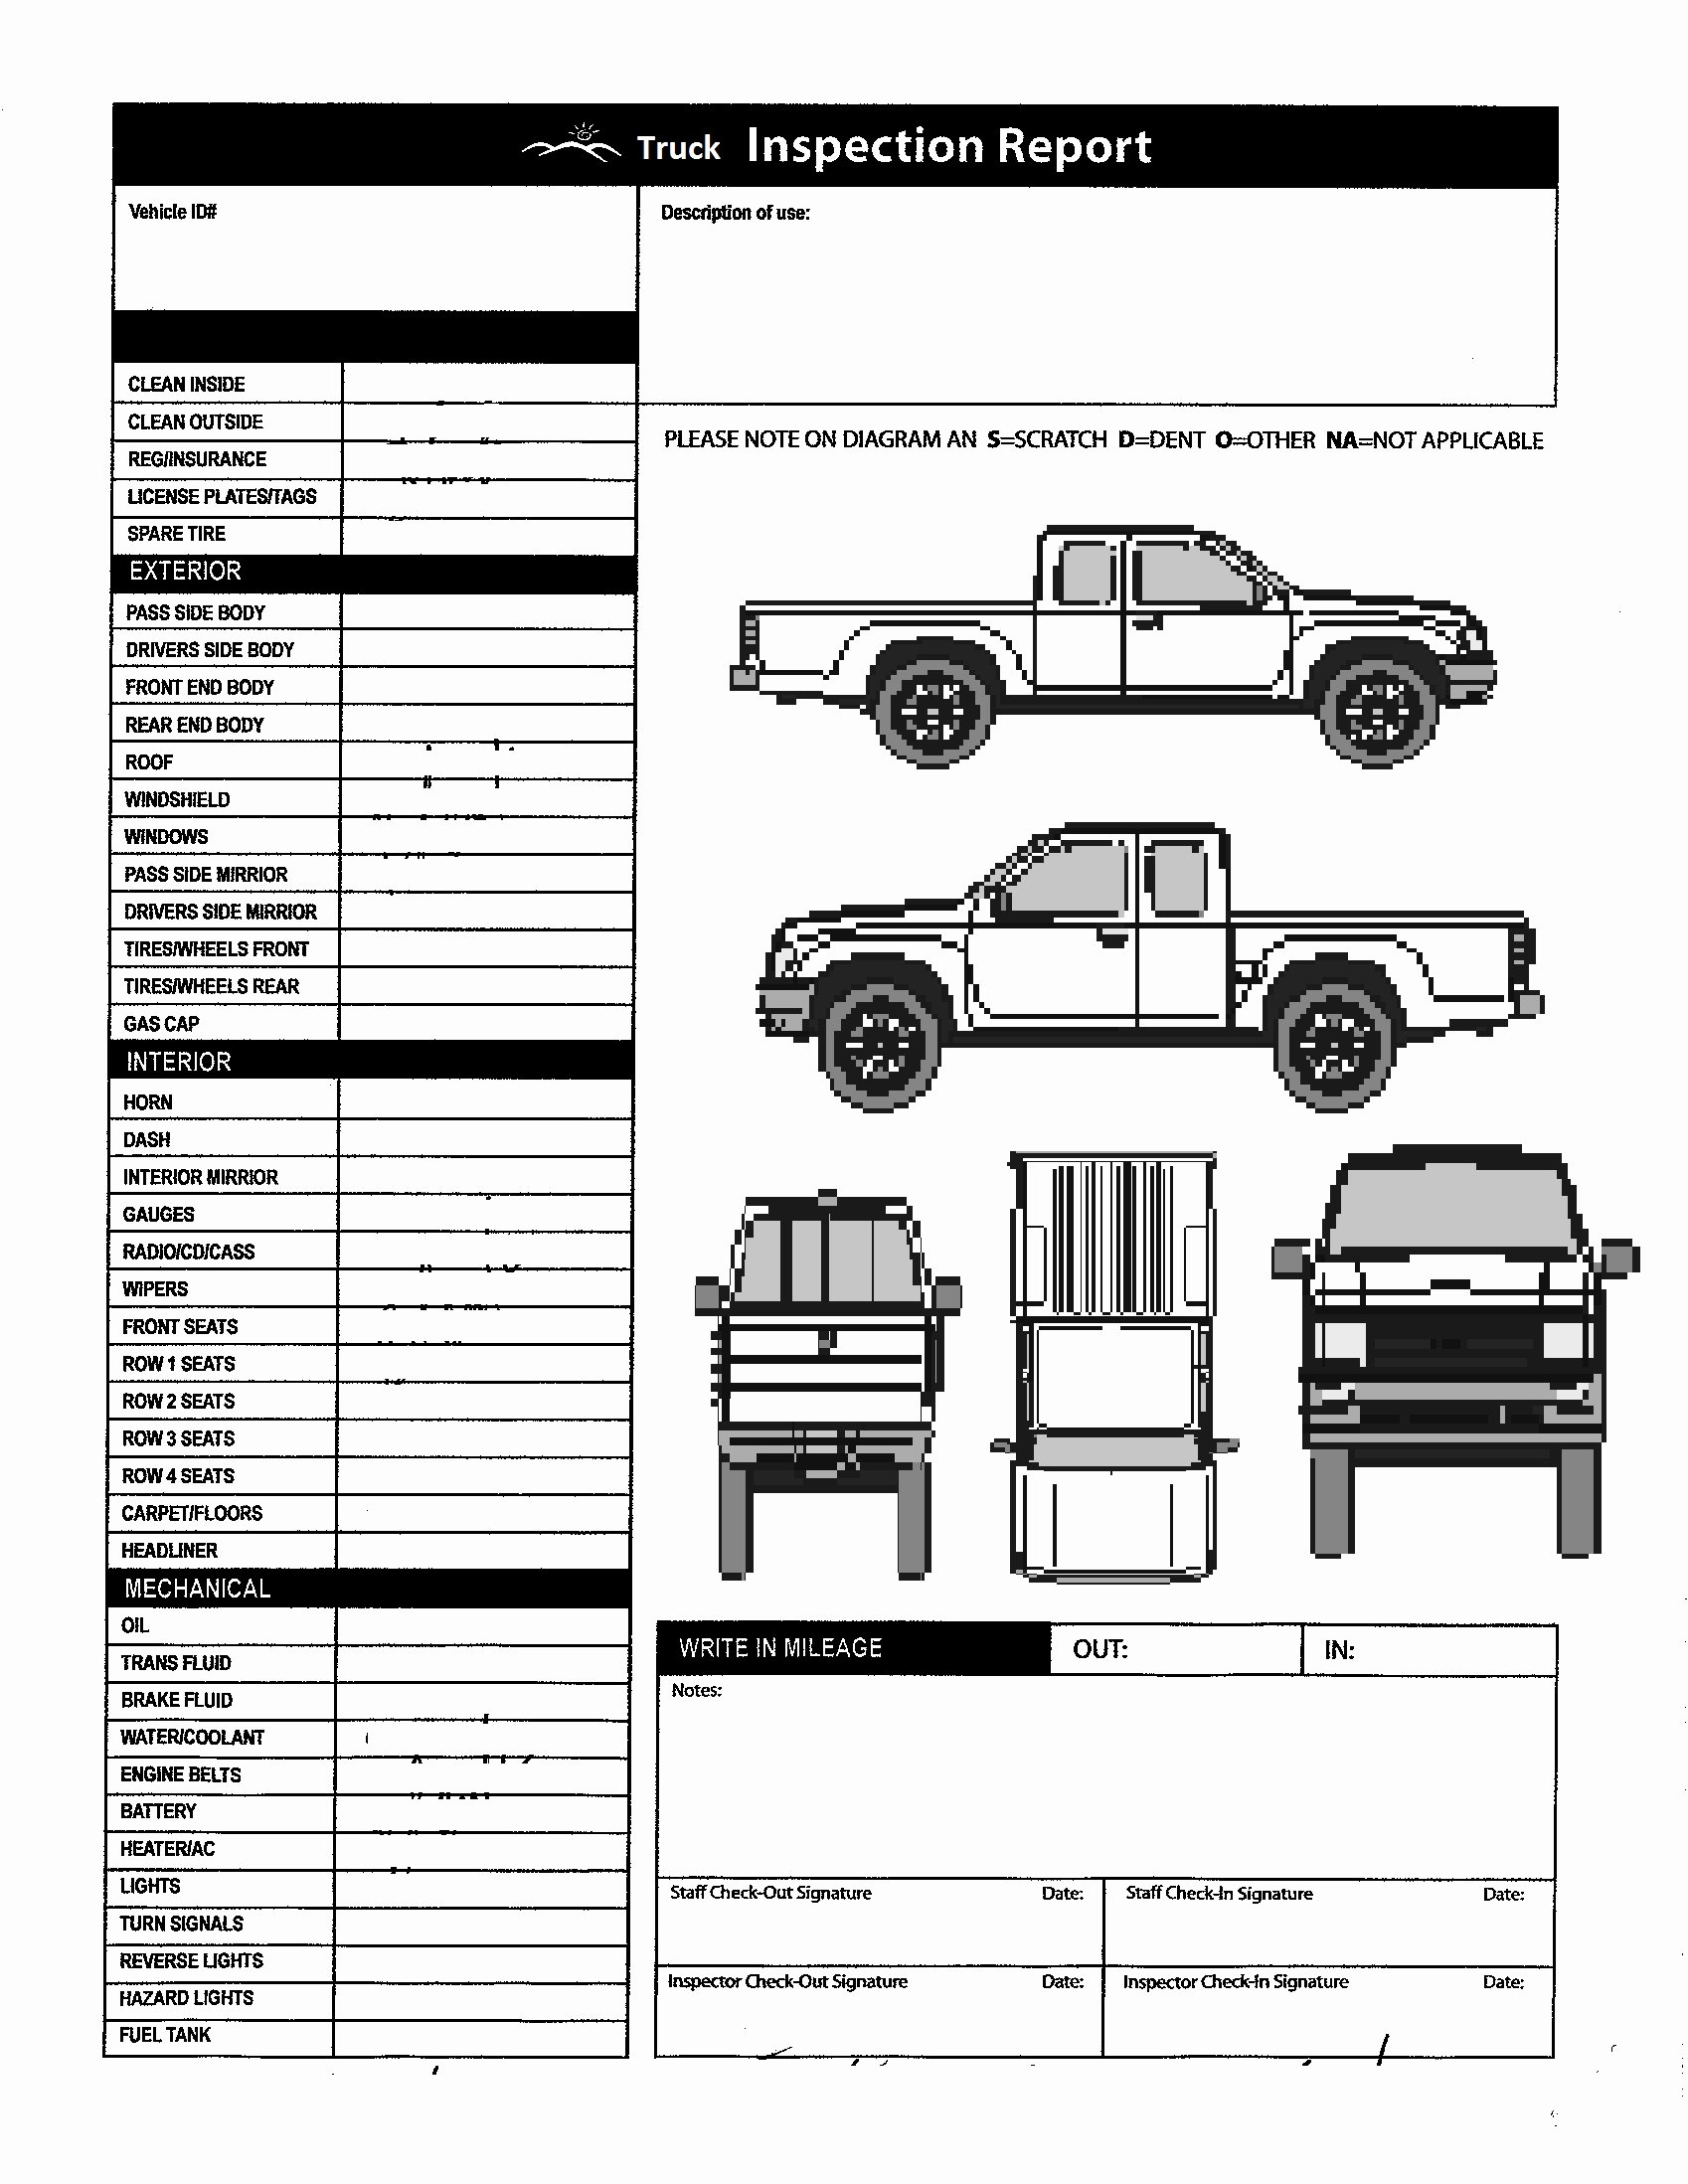 Automotive Inspection Checklist Template Unique Checklist Printable Vehicle Inspection Checklist Template